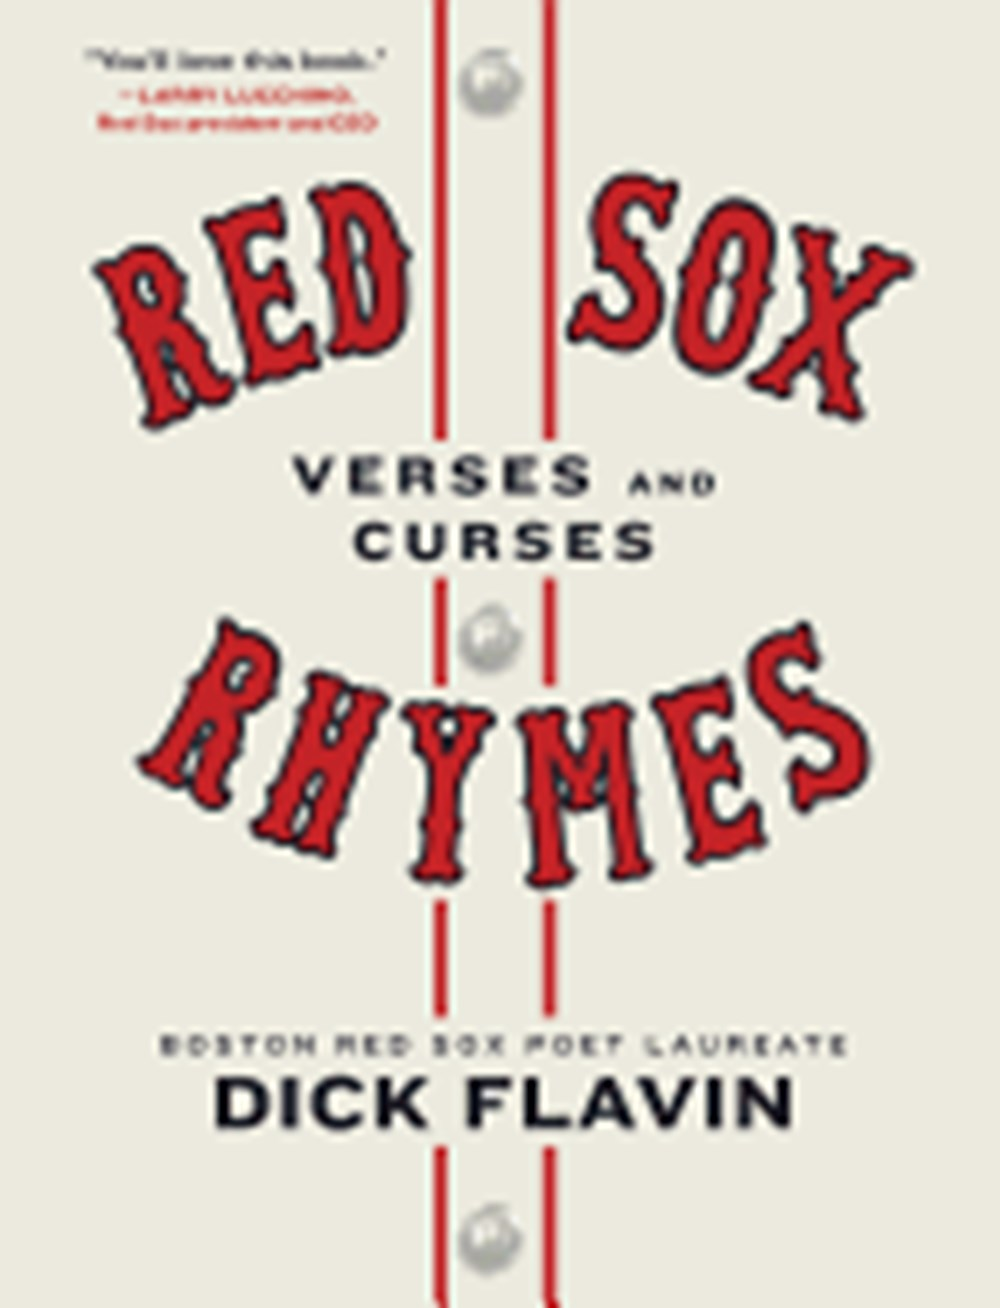 Red Sox Rhymes Verses and Curses